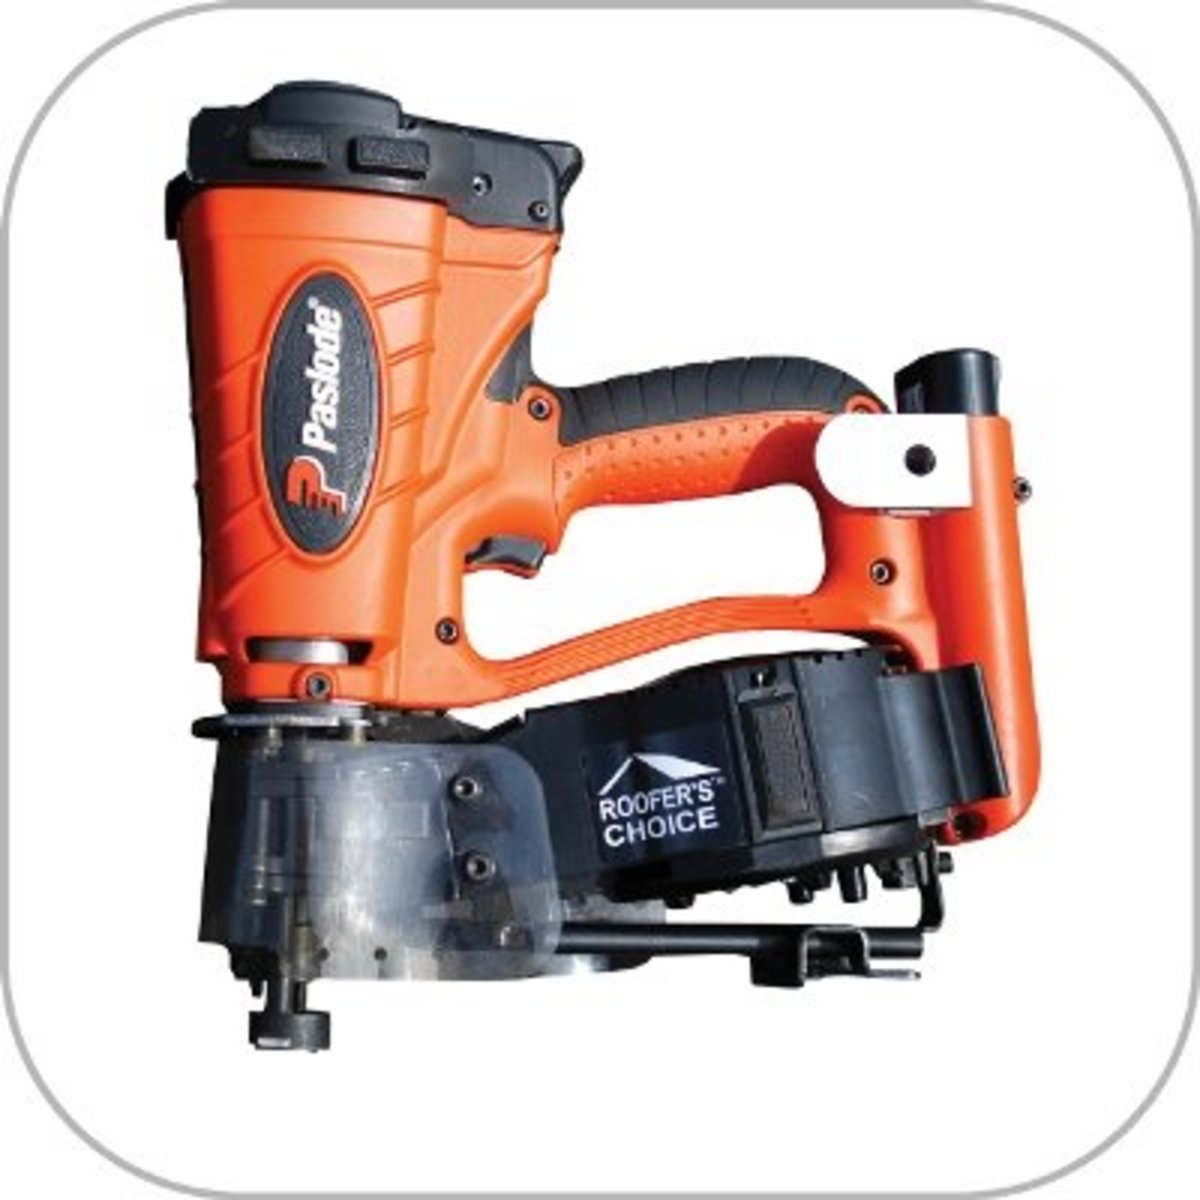 Paslode cr175 c cordless roofing nailer (coil magazine)